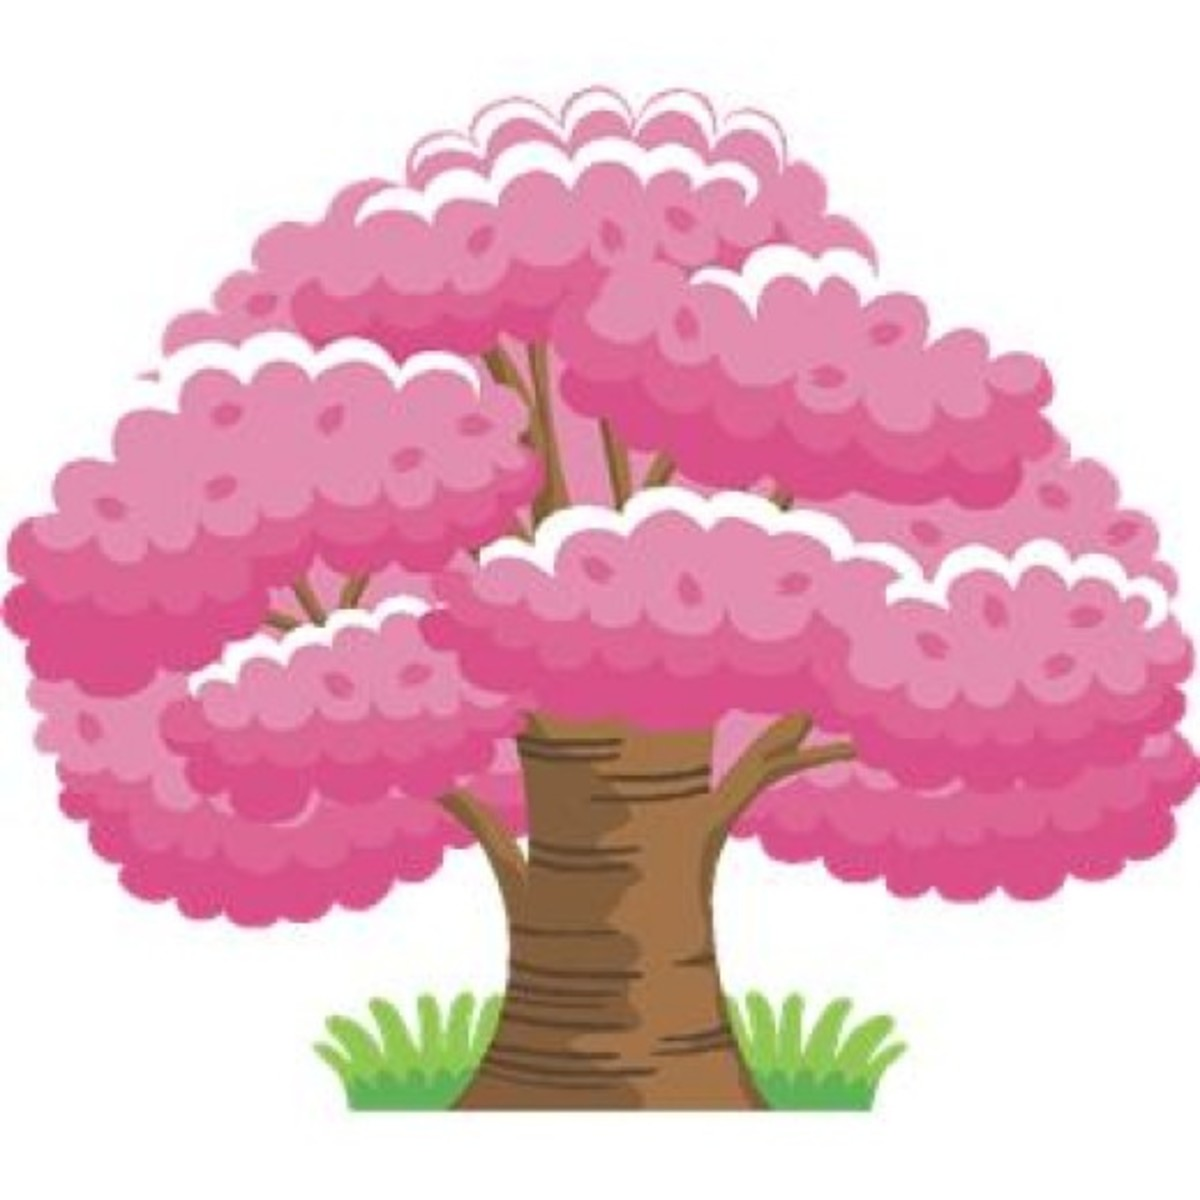 TREE CLIP ART | 175 Free Clip Art Trees | hubpages